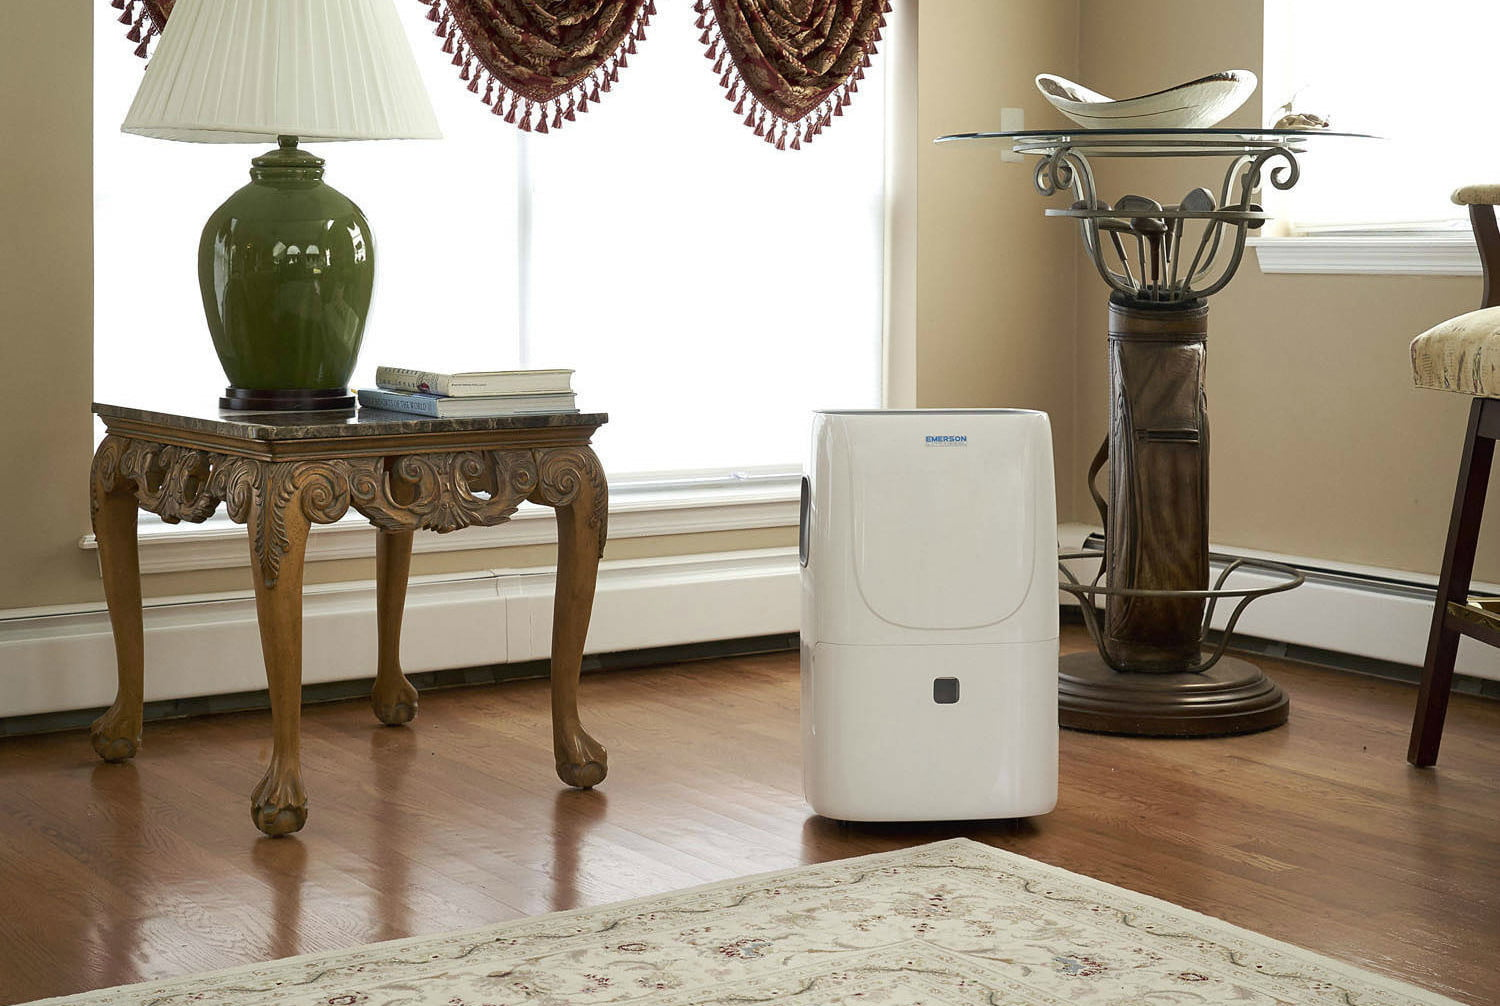 walmart drops prices for frigidaire ge and emerson dehumidifiers quiet kool 70 pint dehumidifier with internal pump 2